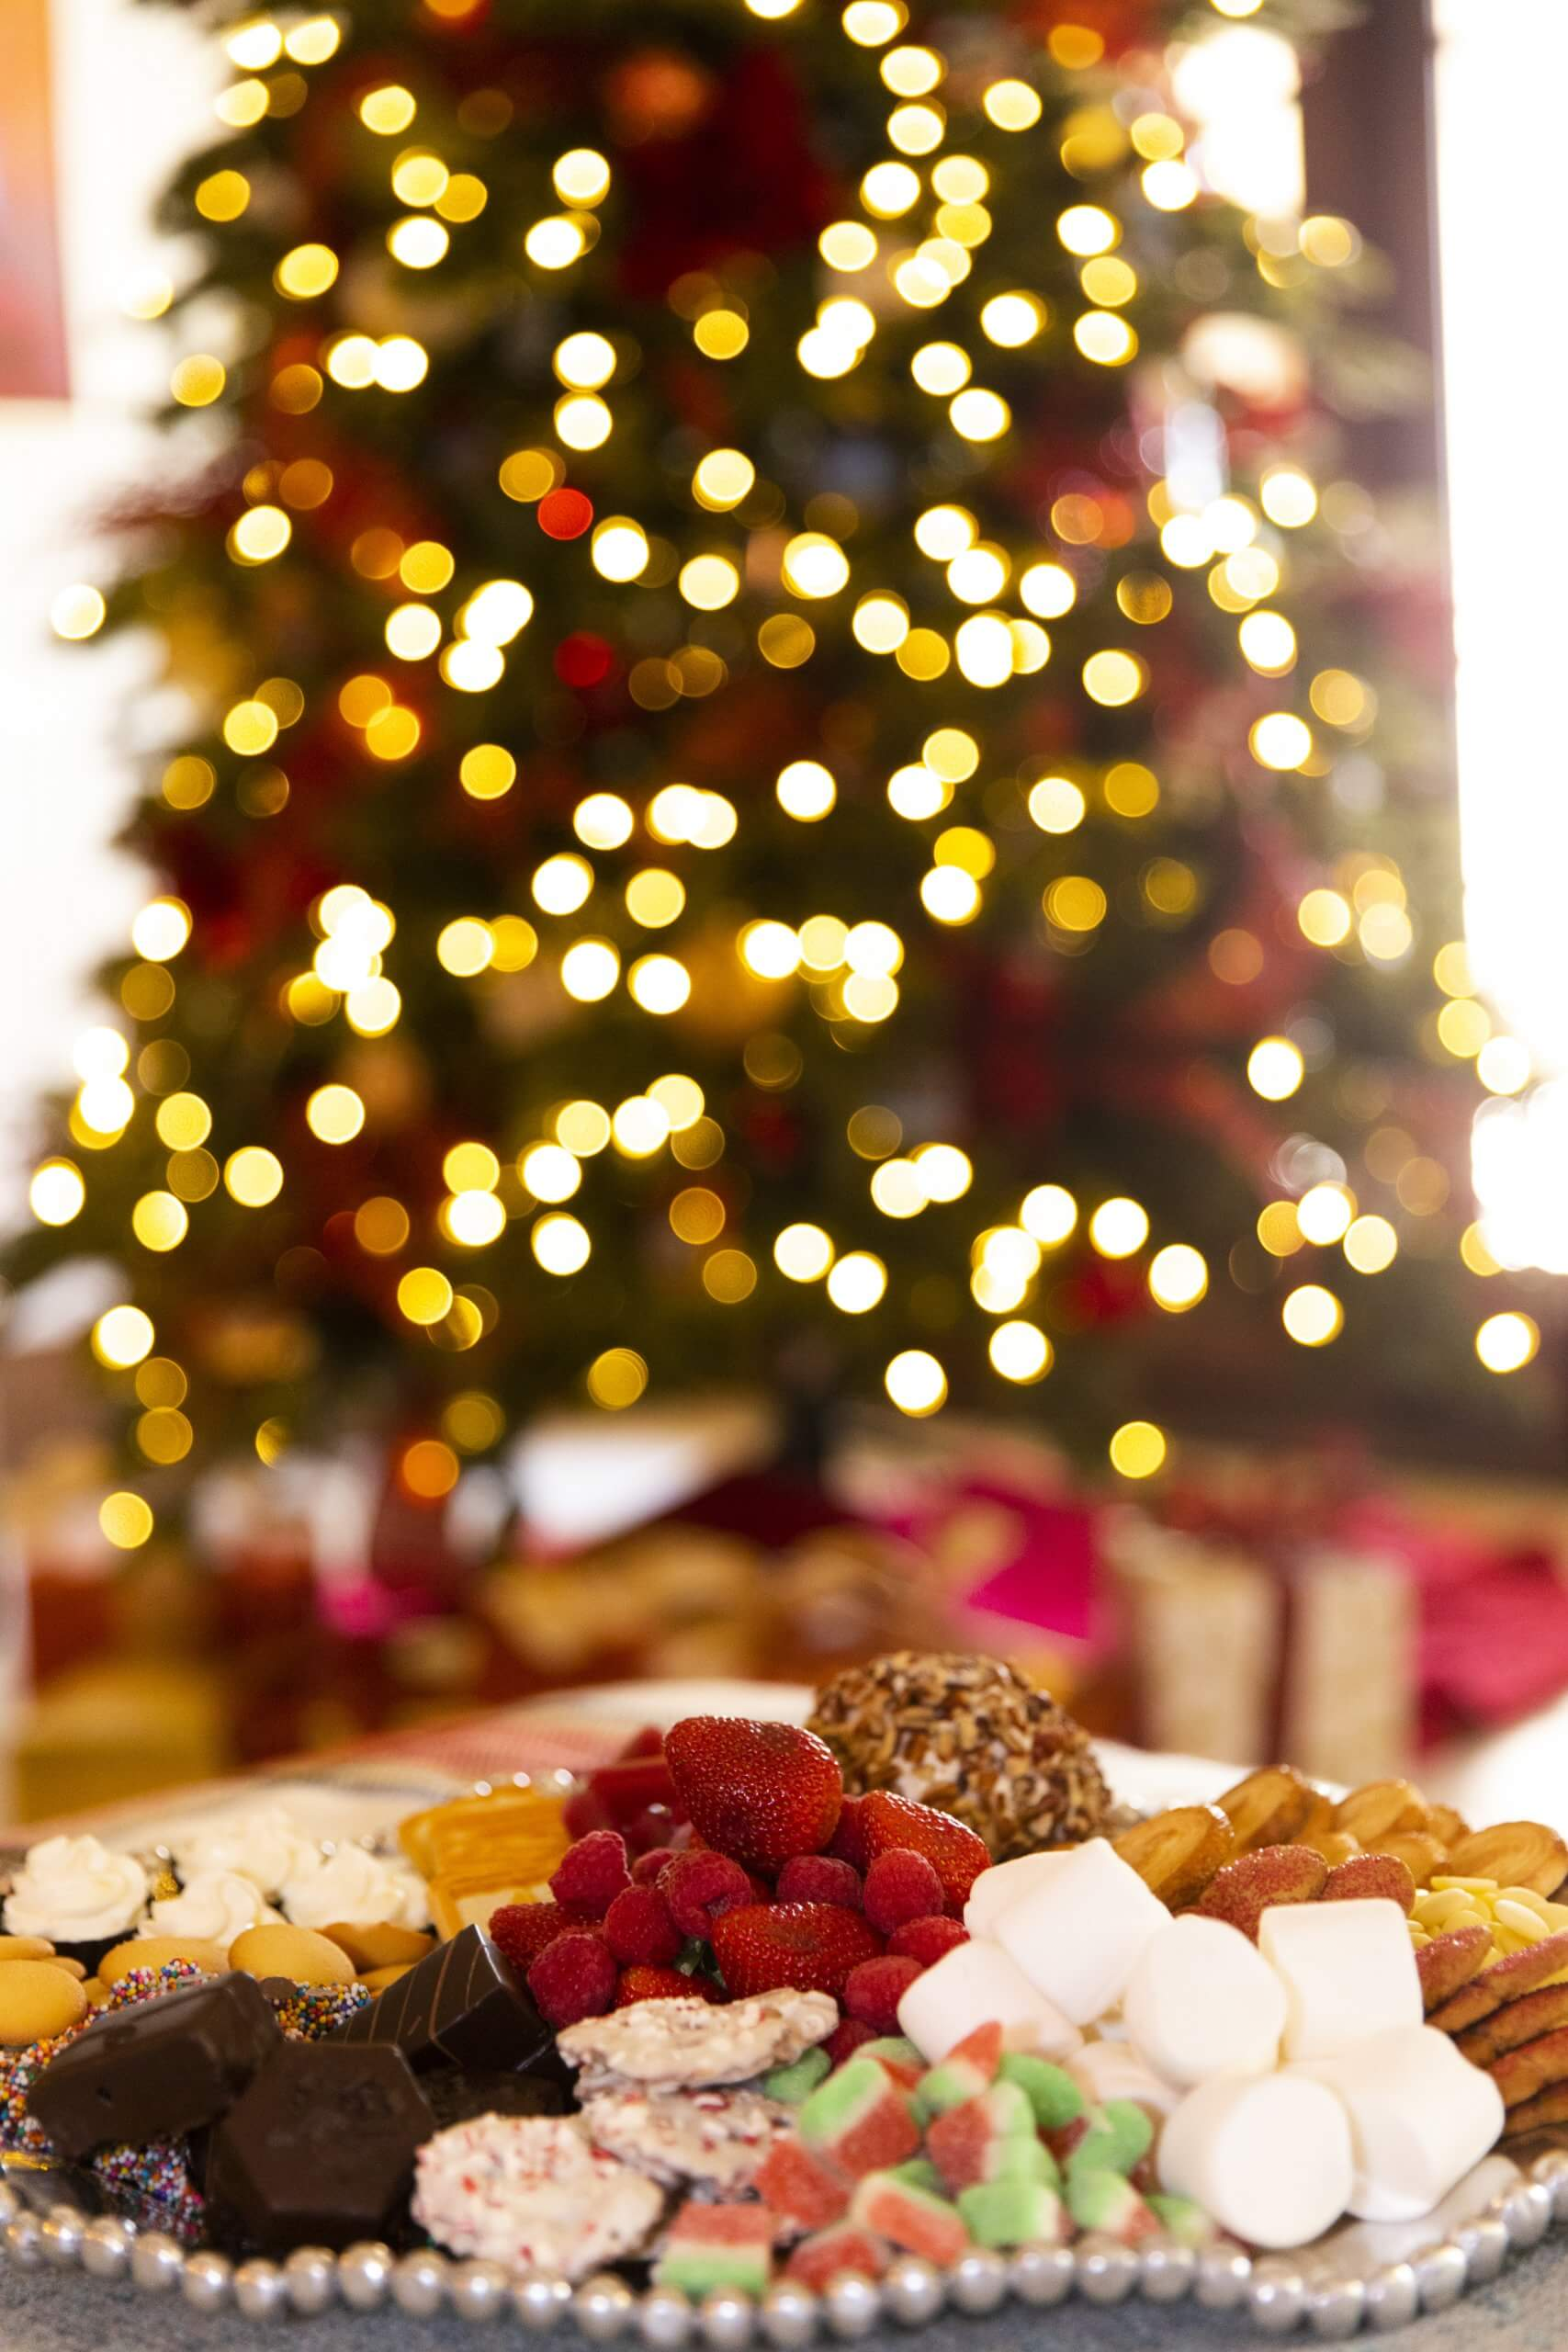 Dessert charcuterie board with red, green gold Christmas tree photo by Clay Greenhaw